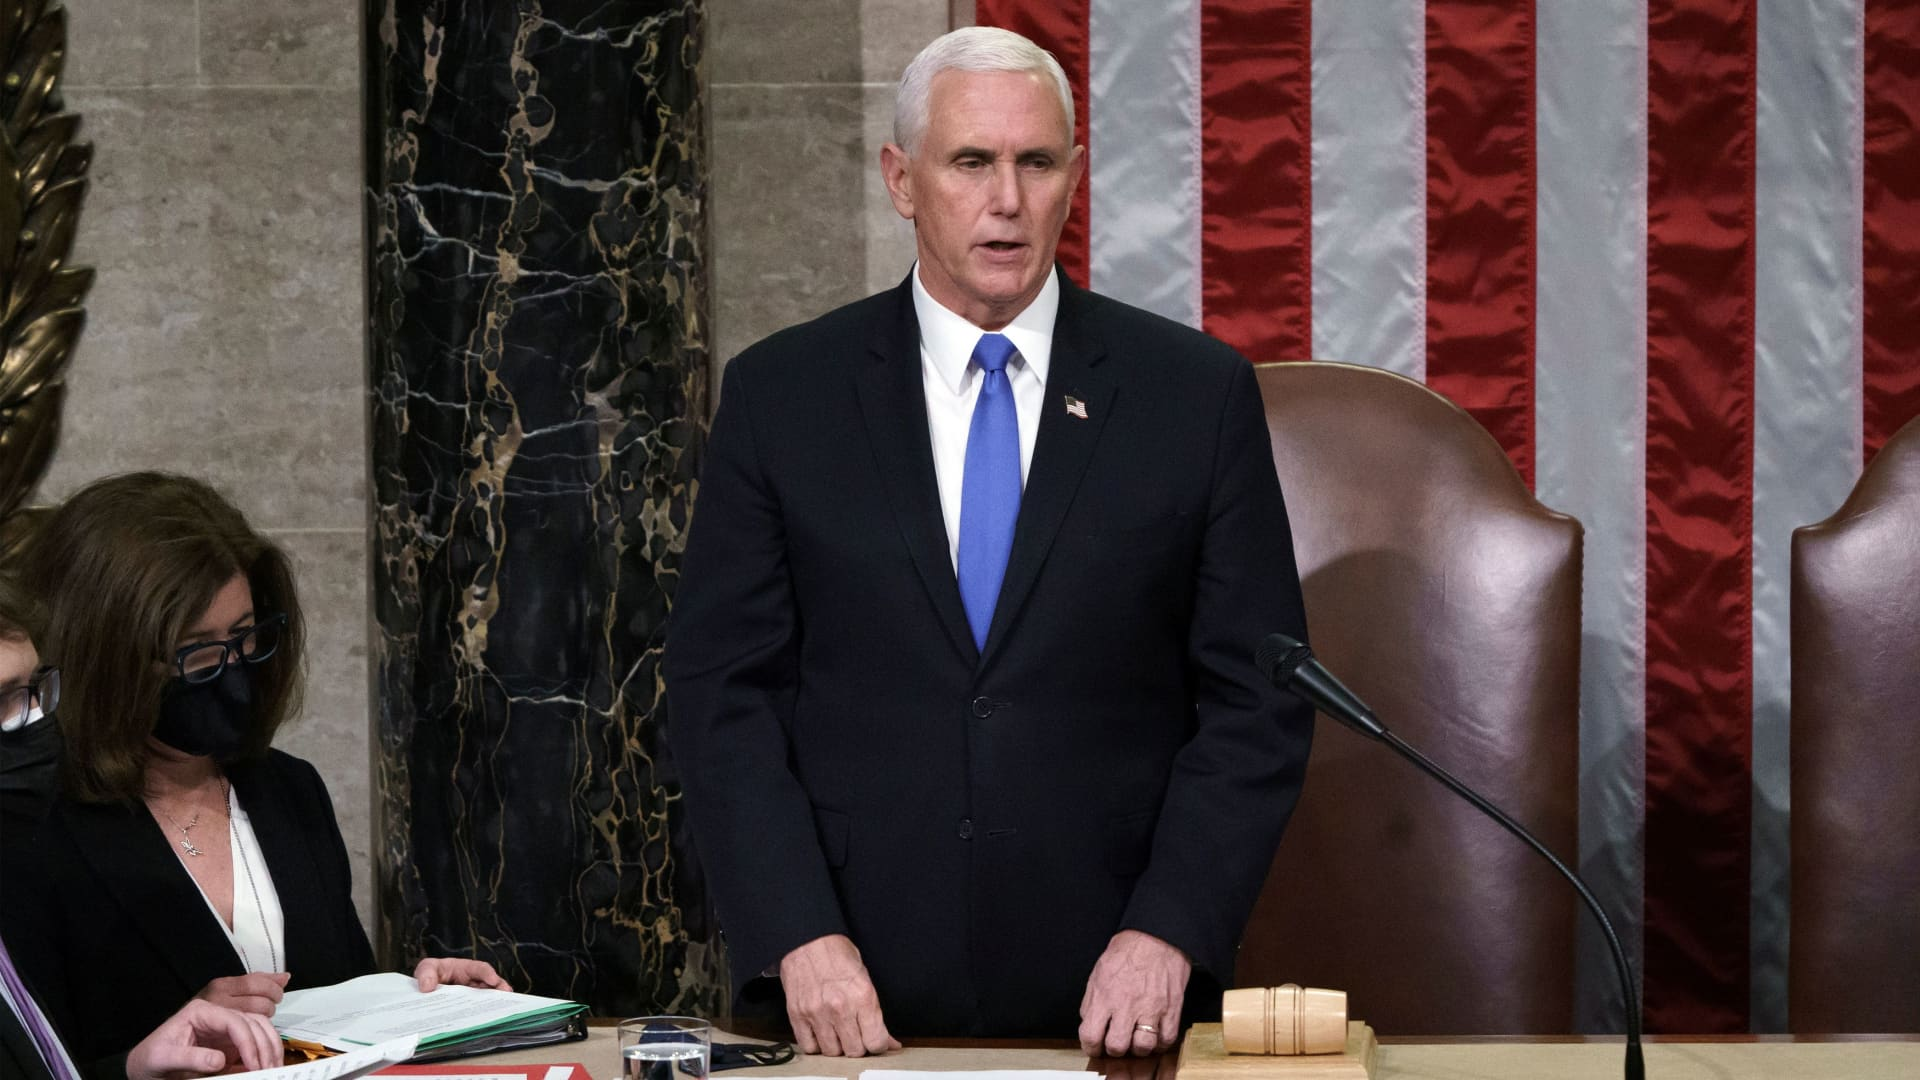 U.S. Vice President Mike Pence reads the final certification of Electoral College votes cast in November's presidential election during a joint session of Congress after working through the night, at the Capitol in Washington, January 7, 2021.